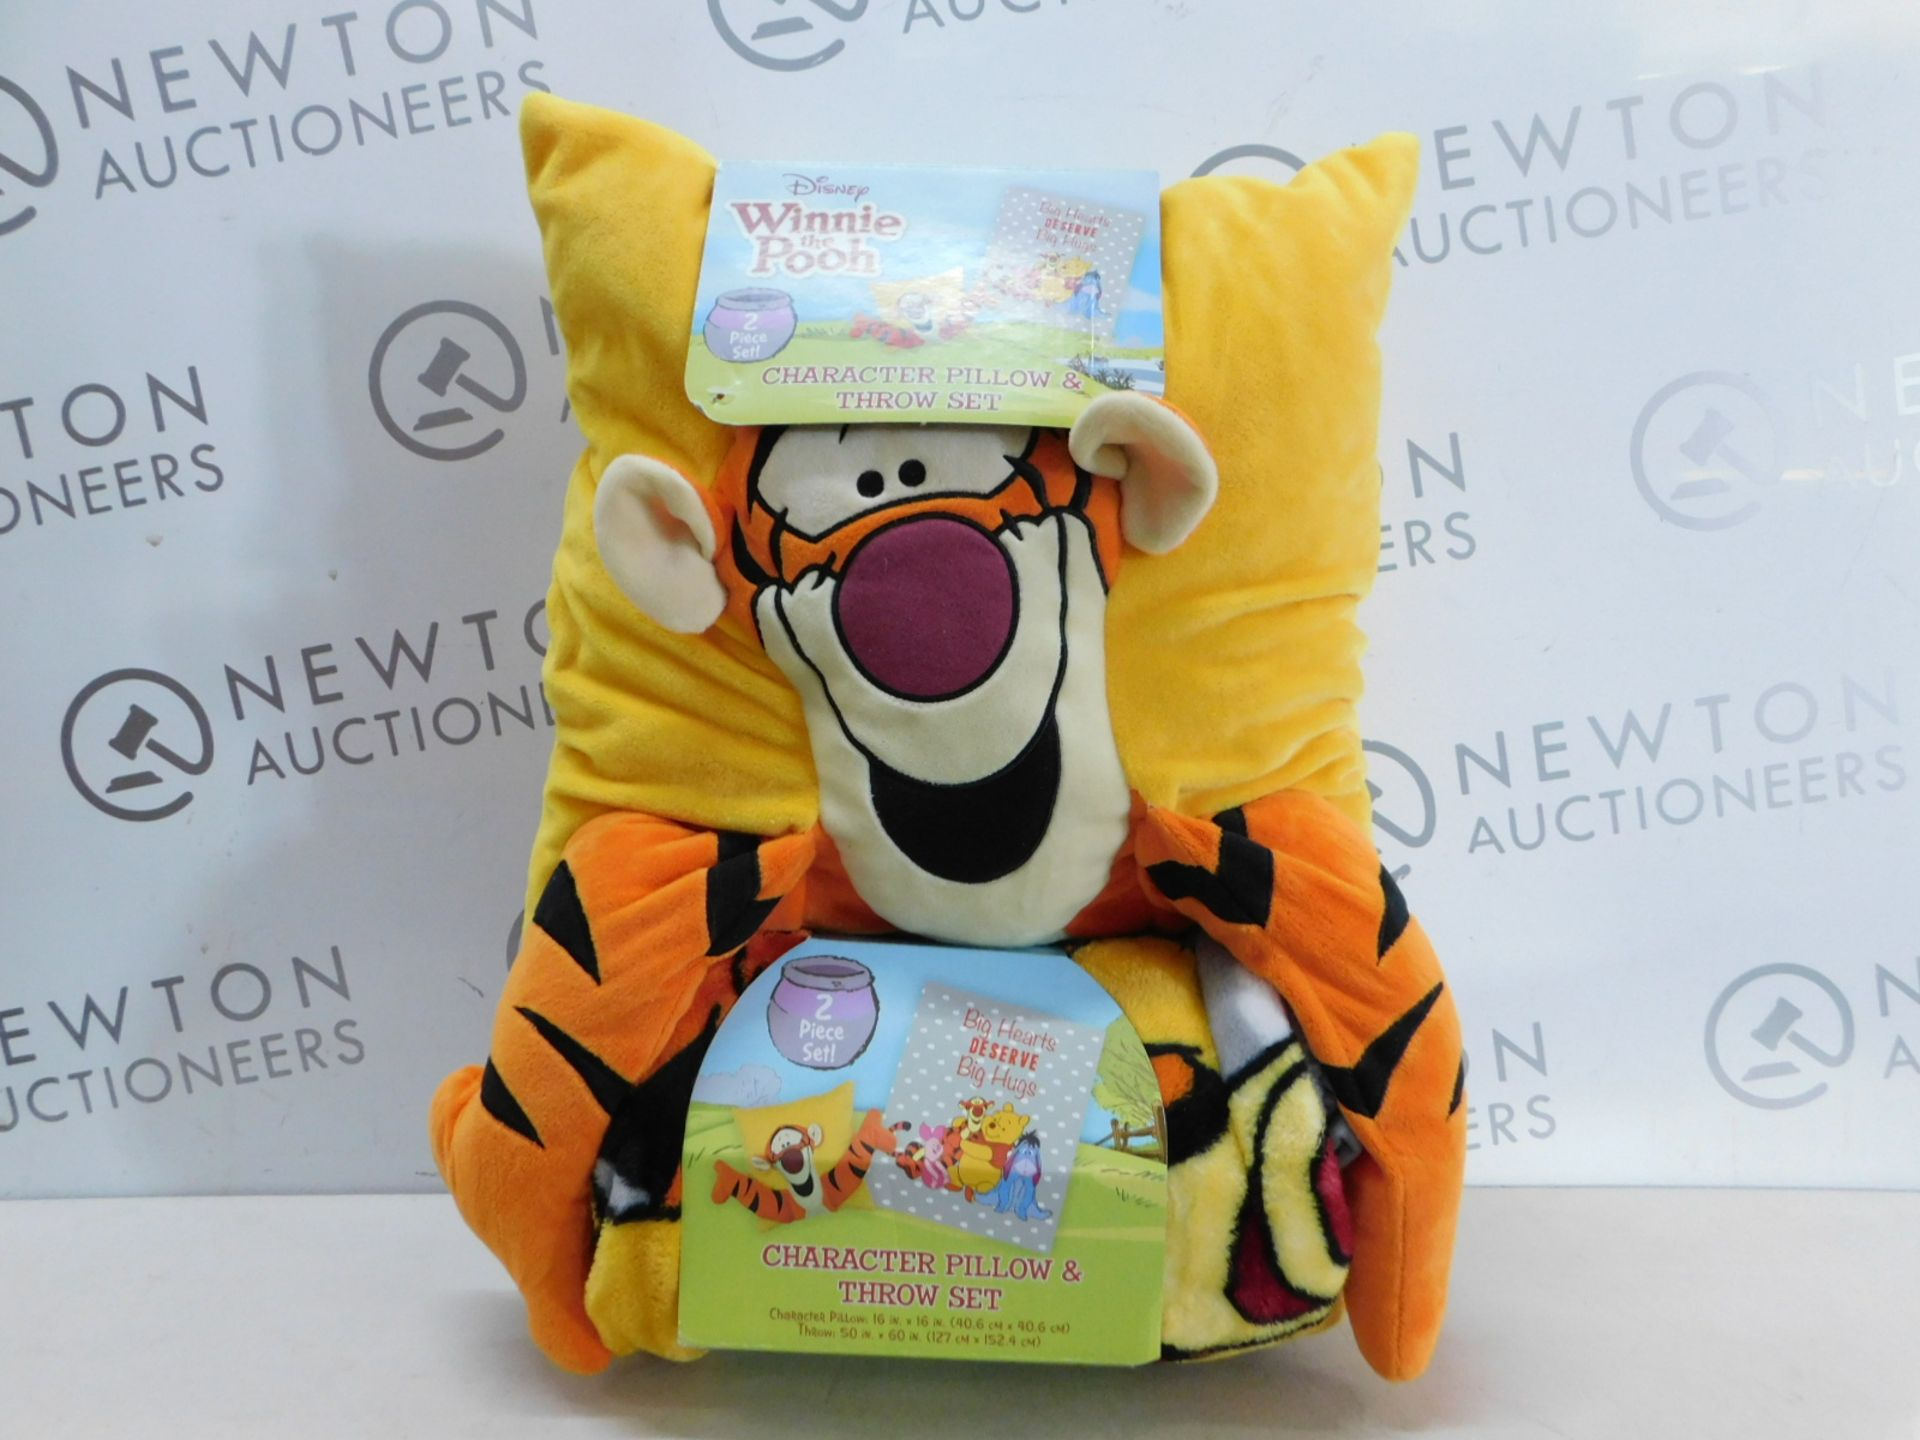 Lot 299 - 1 BRAND NEW PACK OF WINNIE THE POOH CHARACTER PILLOW & THROW SET RRP £39.99